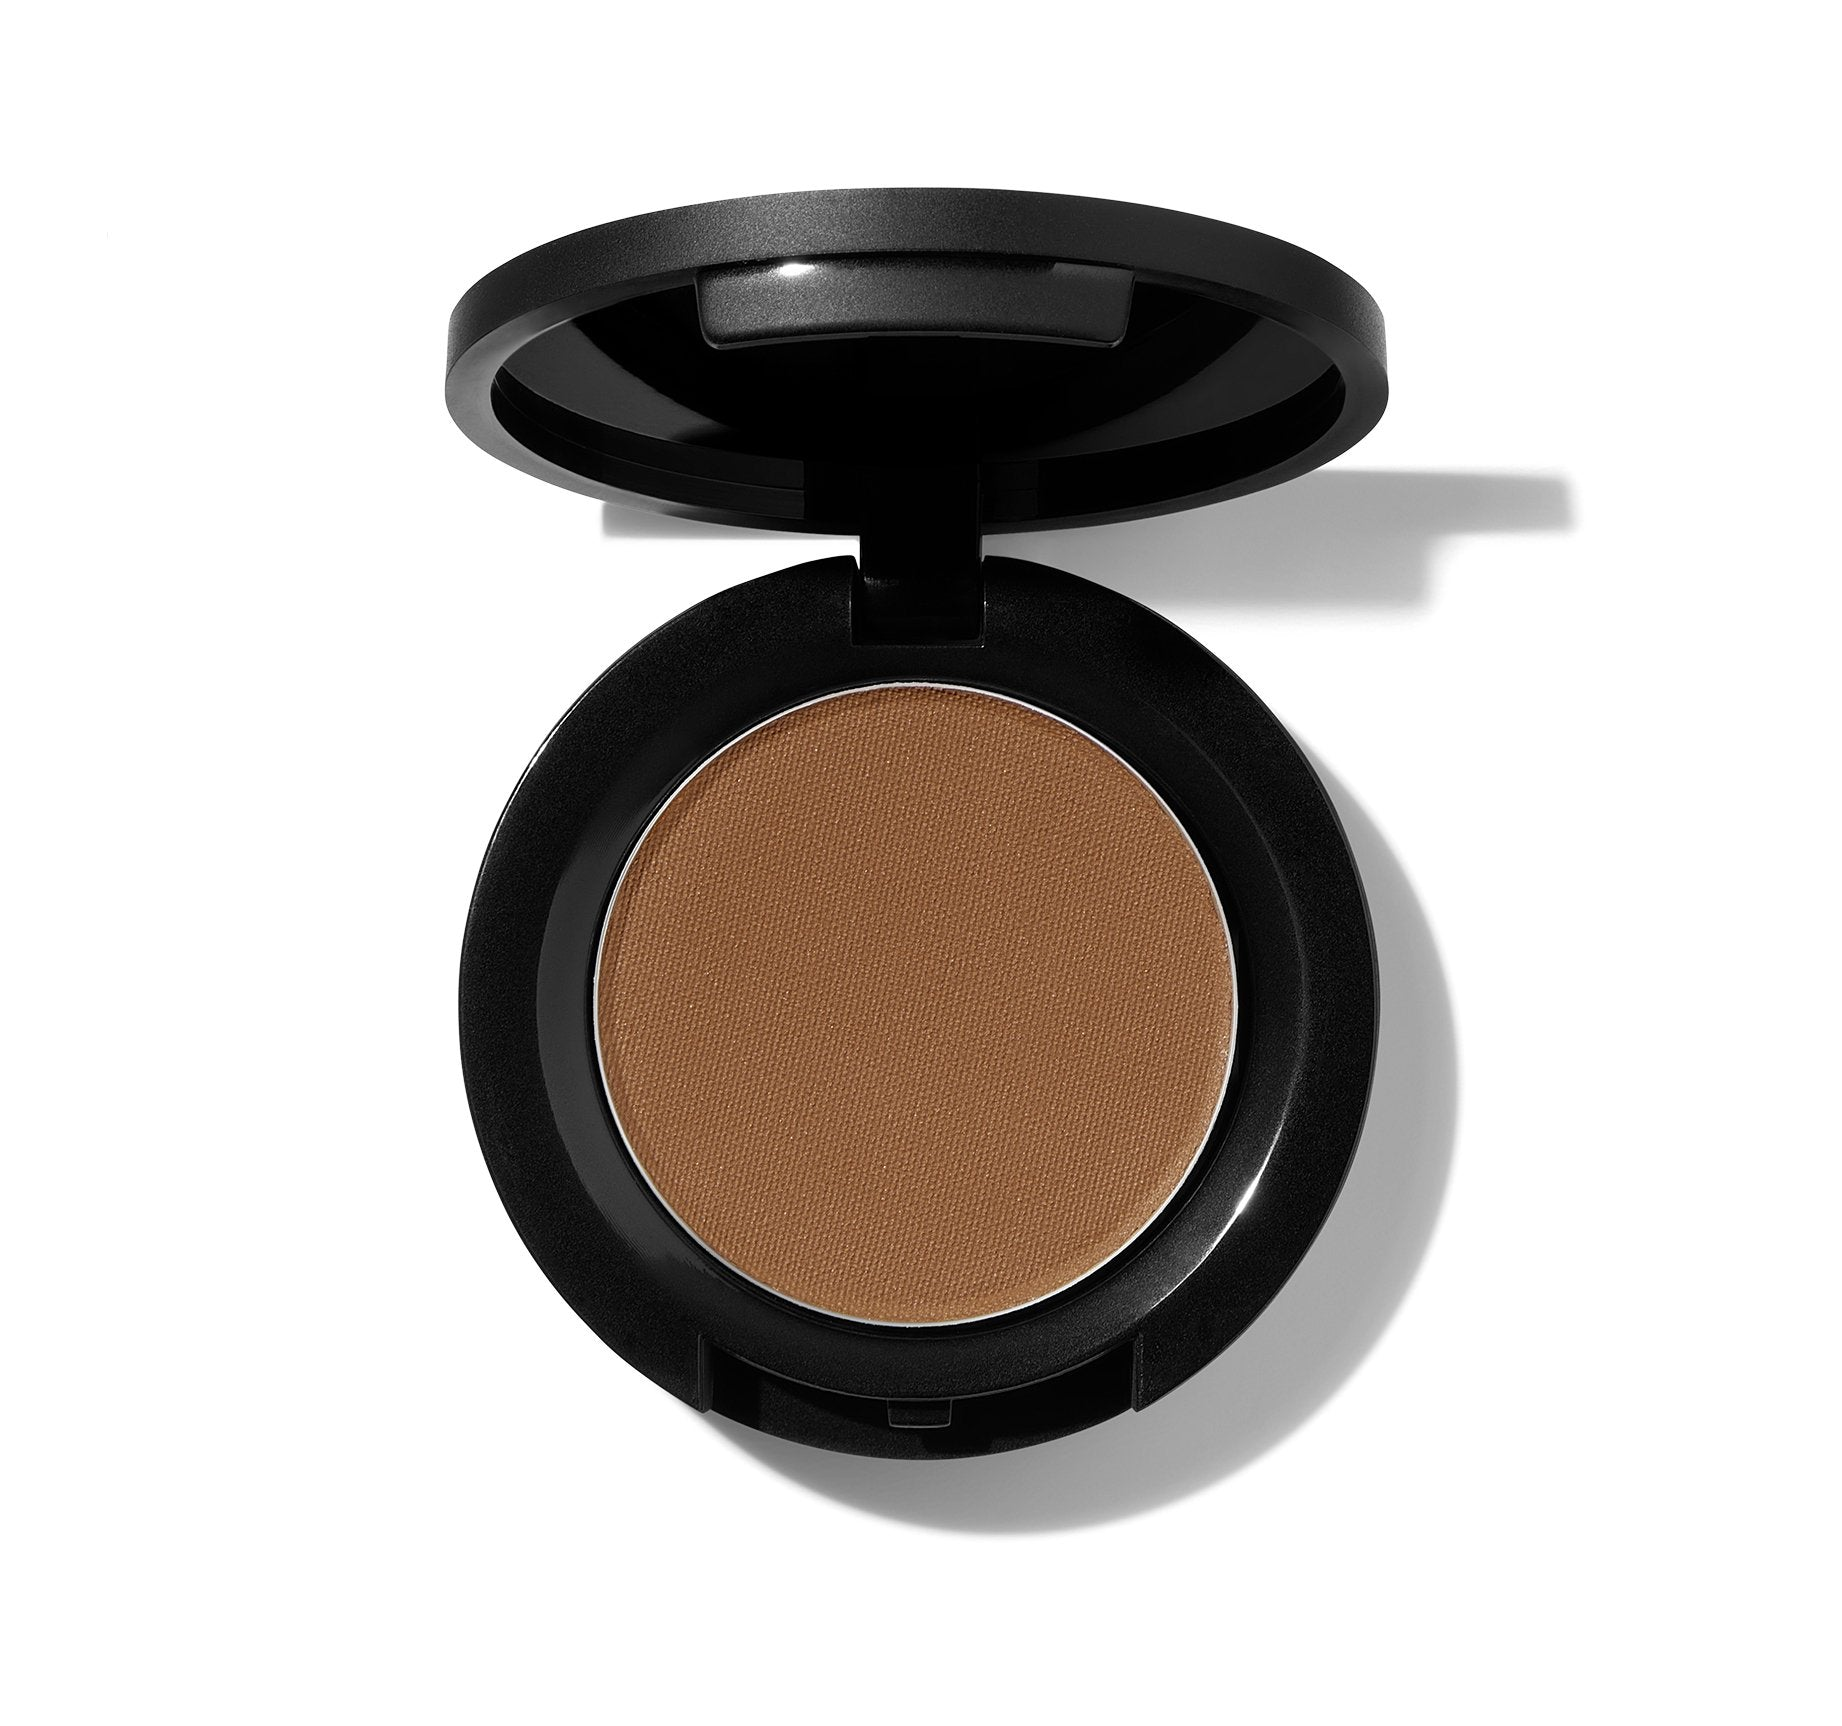 BROW POWDER - MOCHA, view larger image